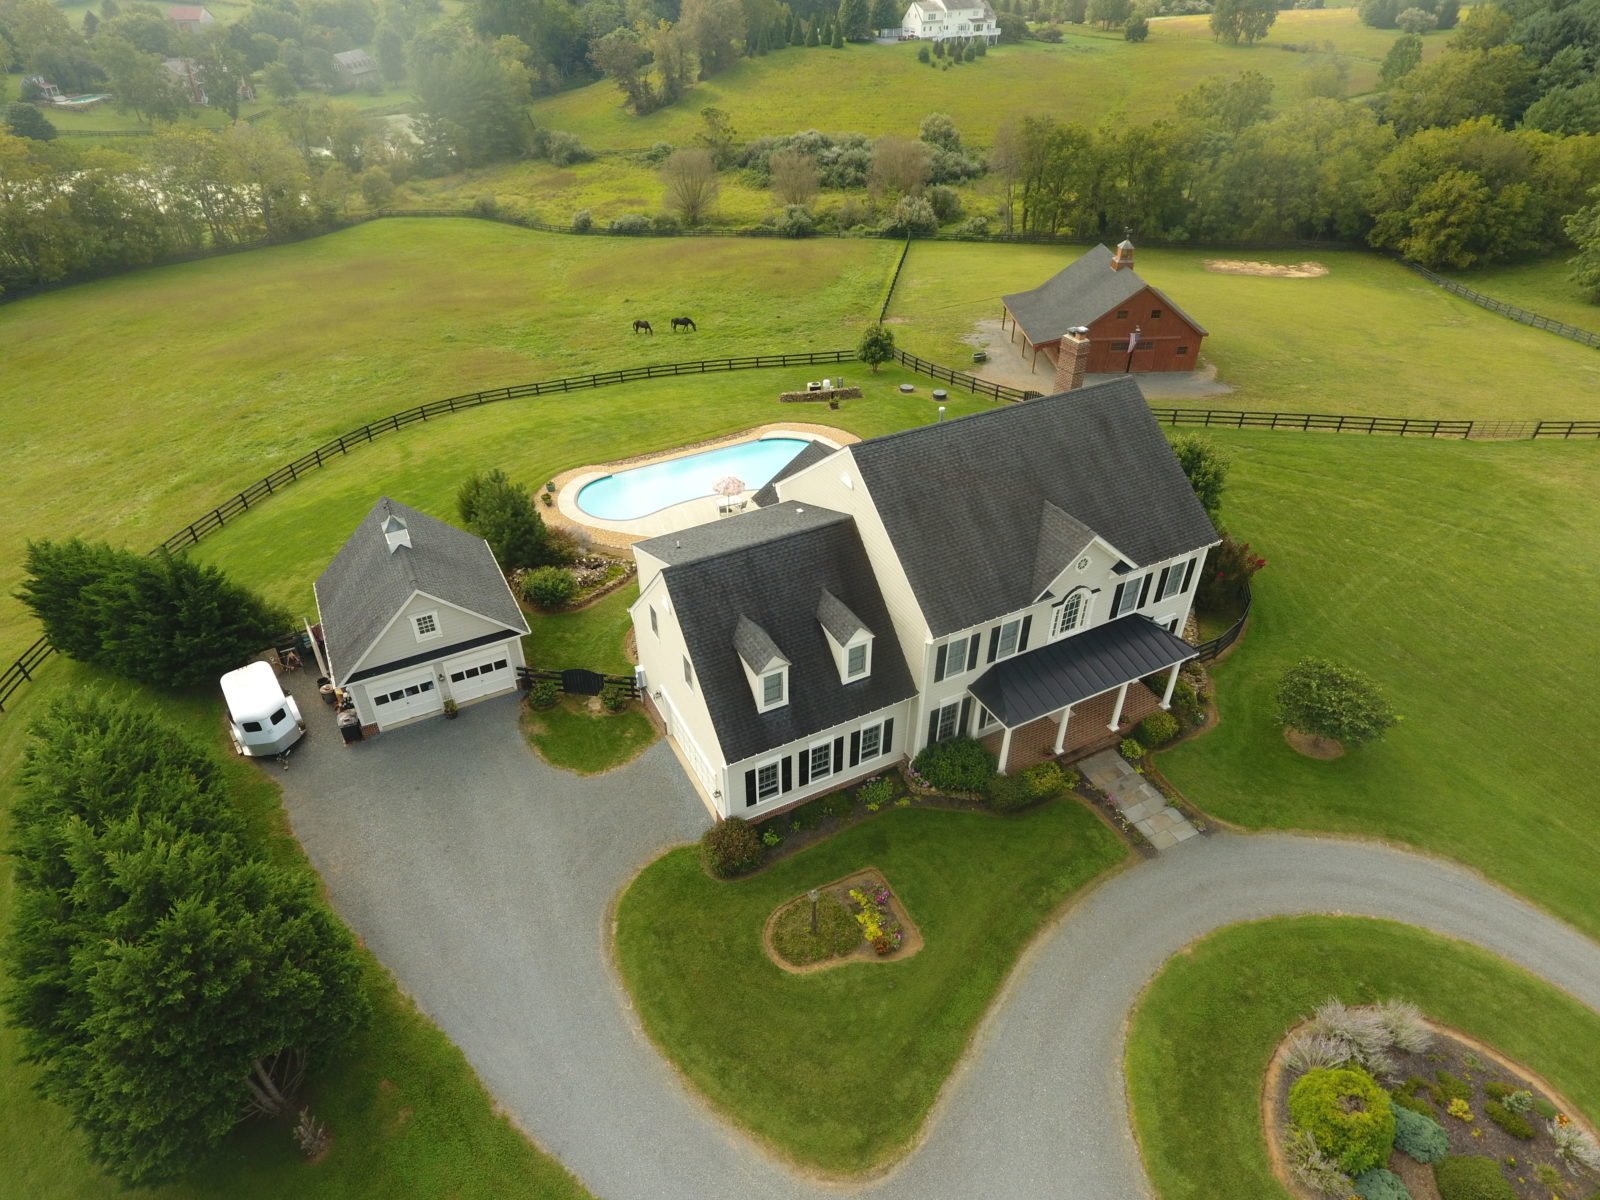 Aerial view of 19676 Greggsivlle Road in Purcellville Virginia